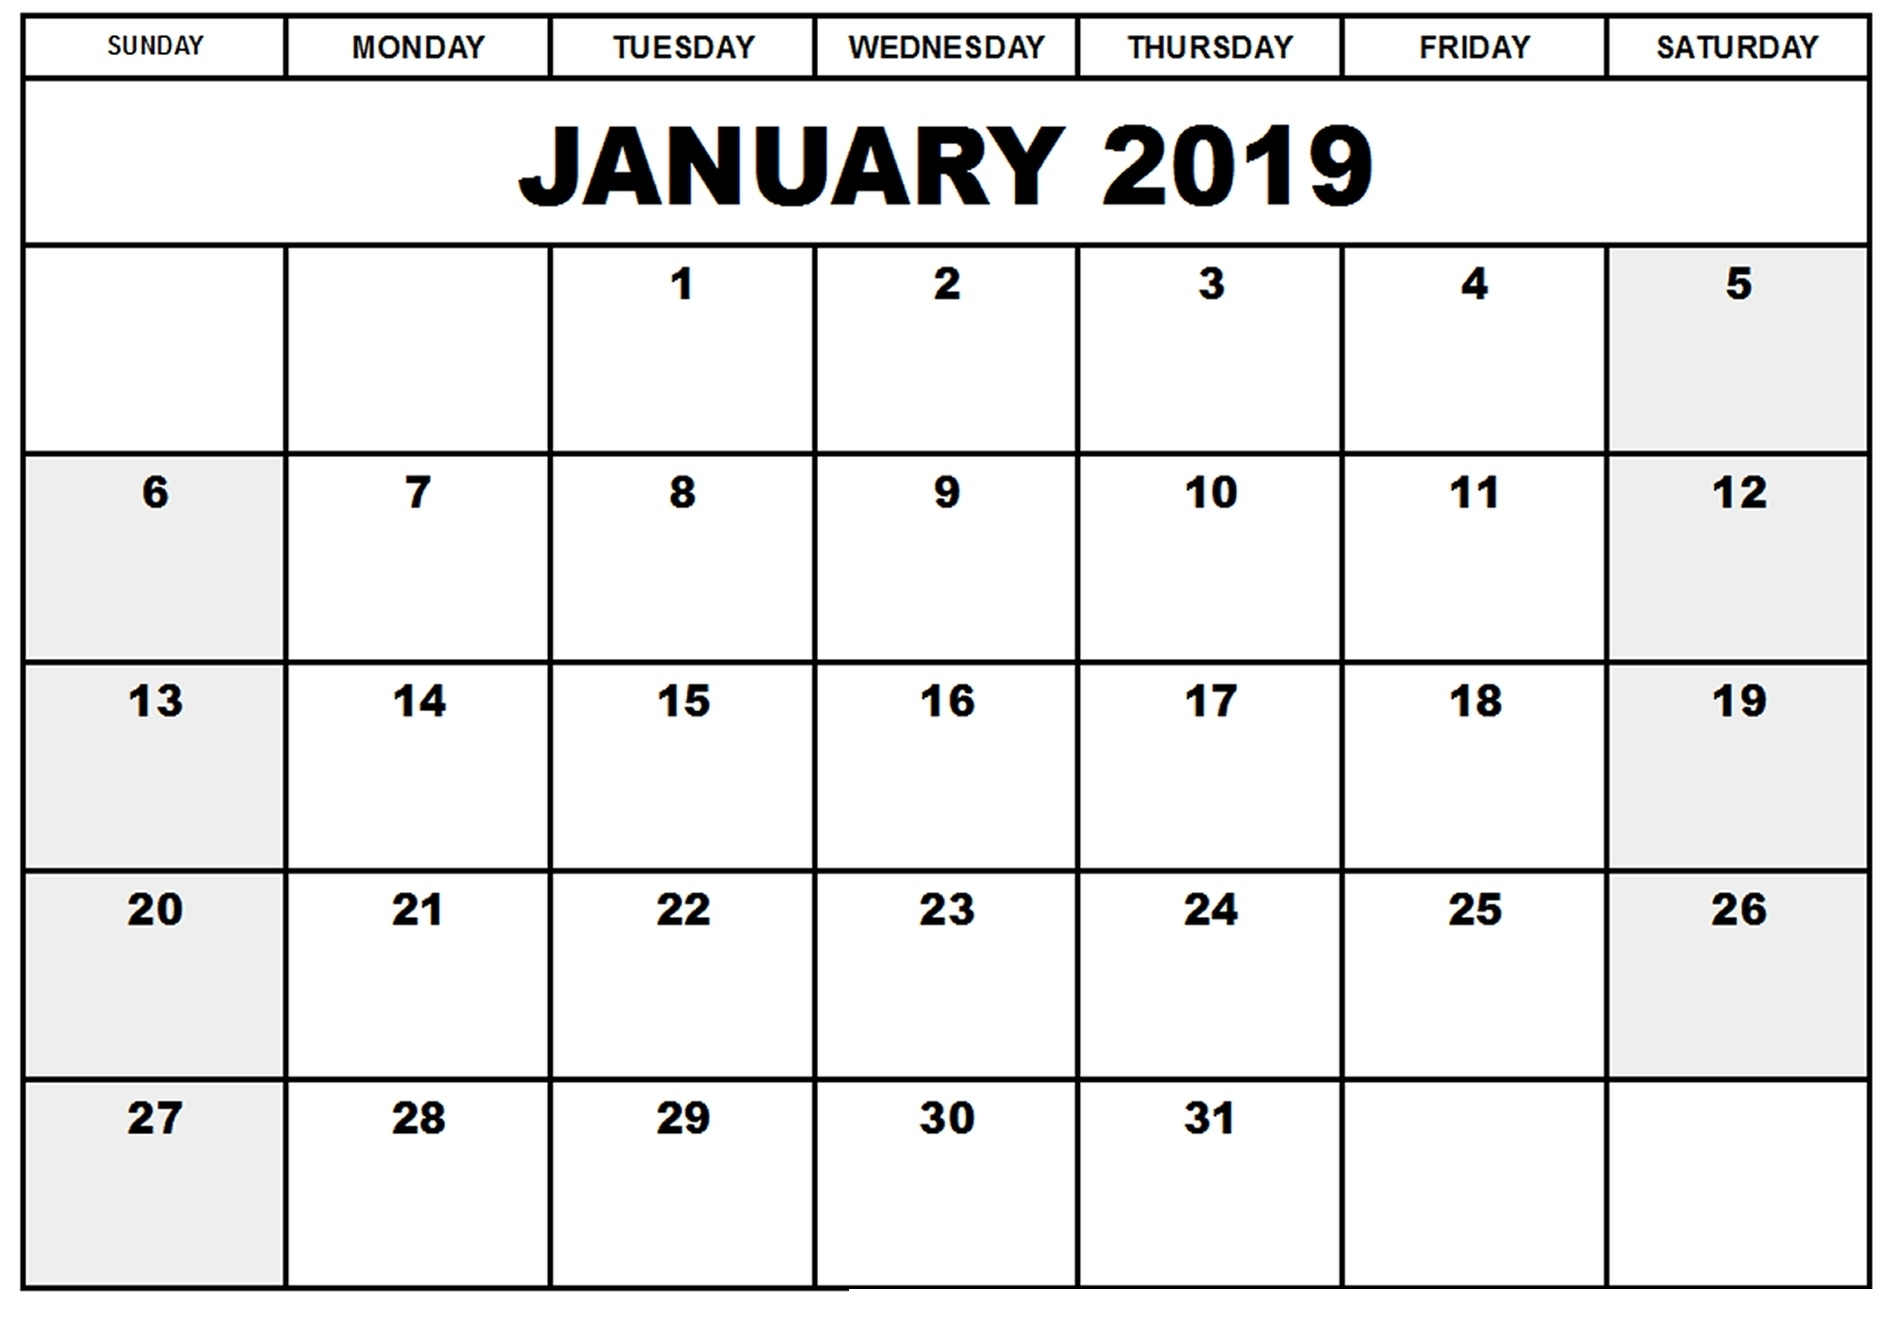 january 2019 calendar usa uk blank calendar 2019::January 2019 Calendar USA